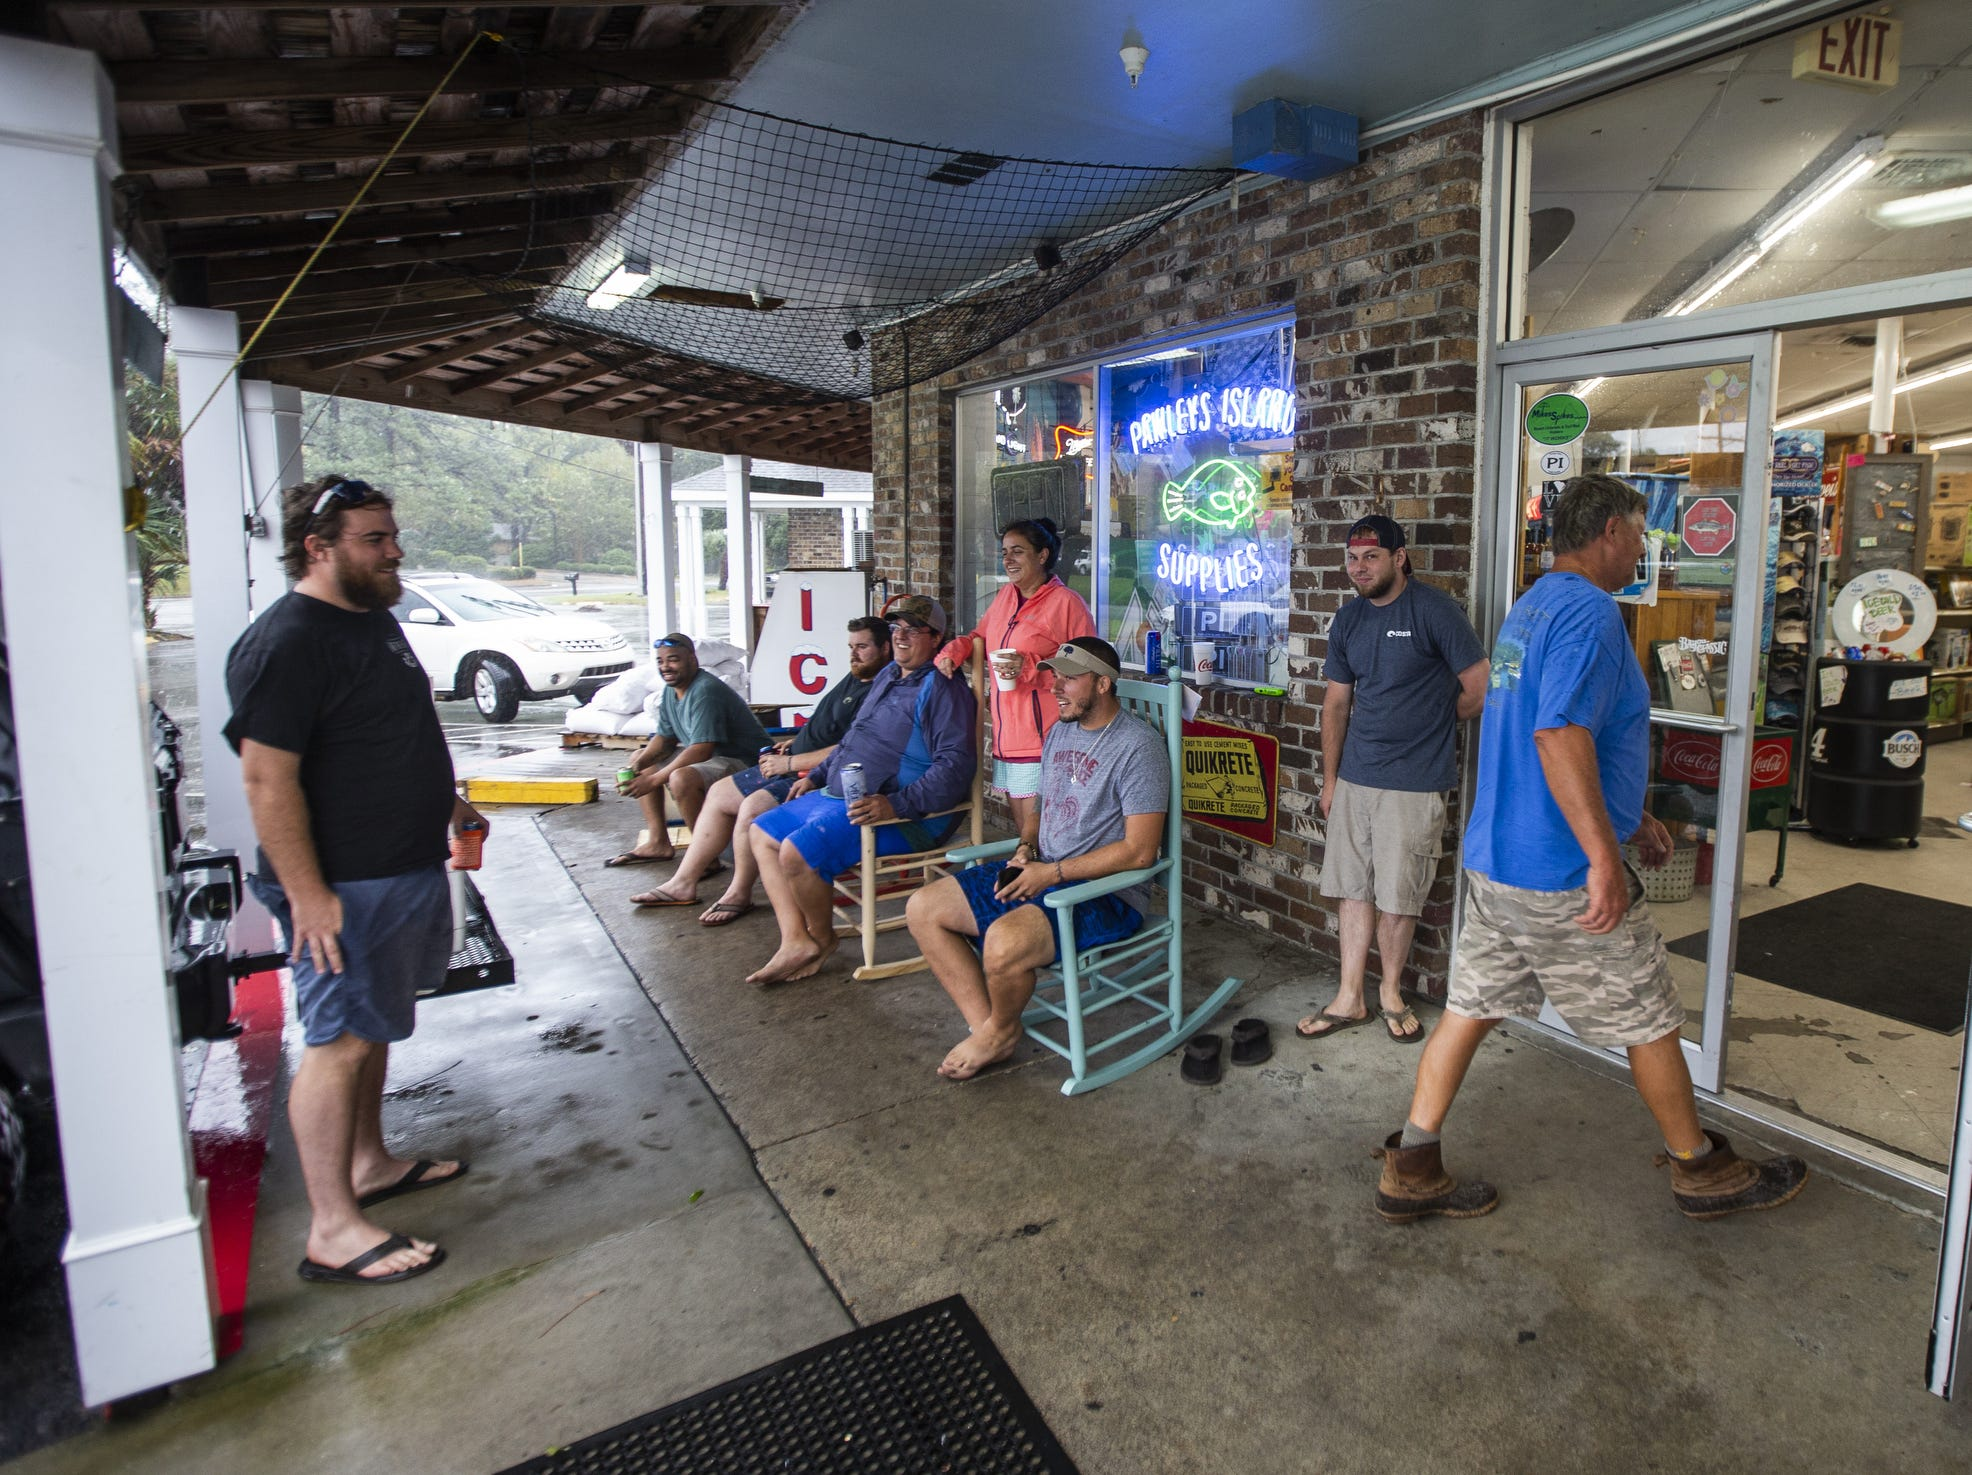 Local residents sit outside the Pawleys Island Supplies drinking beer as customers come and go at the only open store for miles around on Friday, in Pawleys Island, S.C.